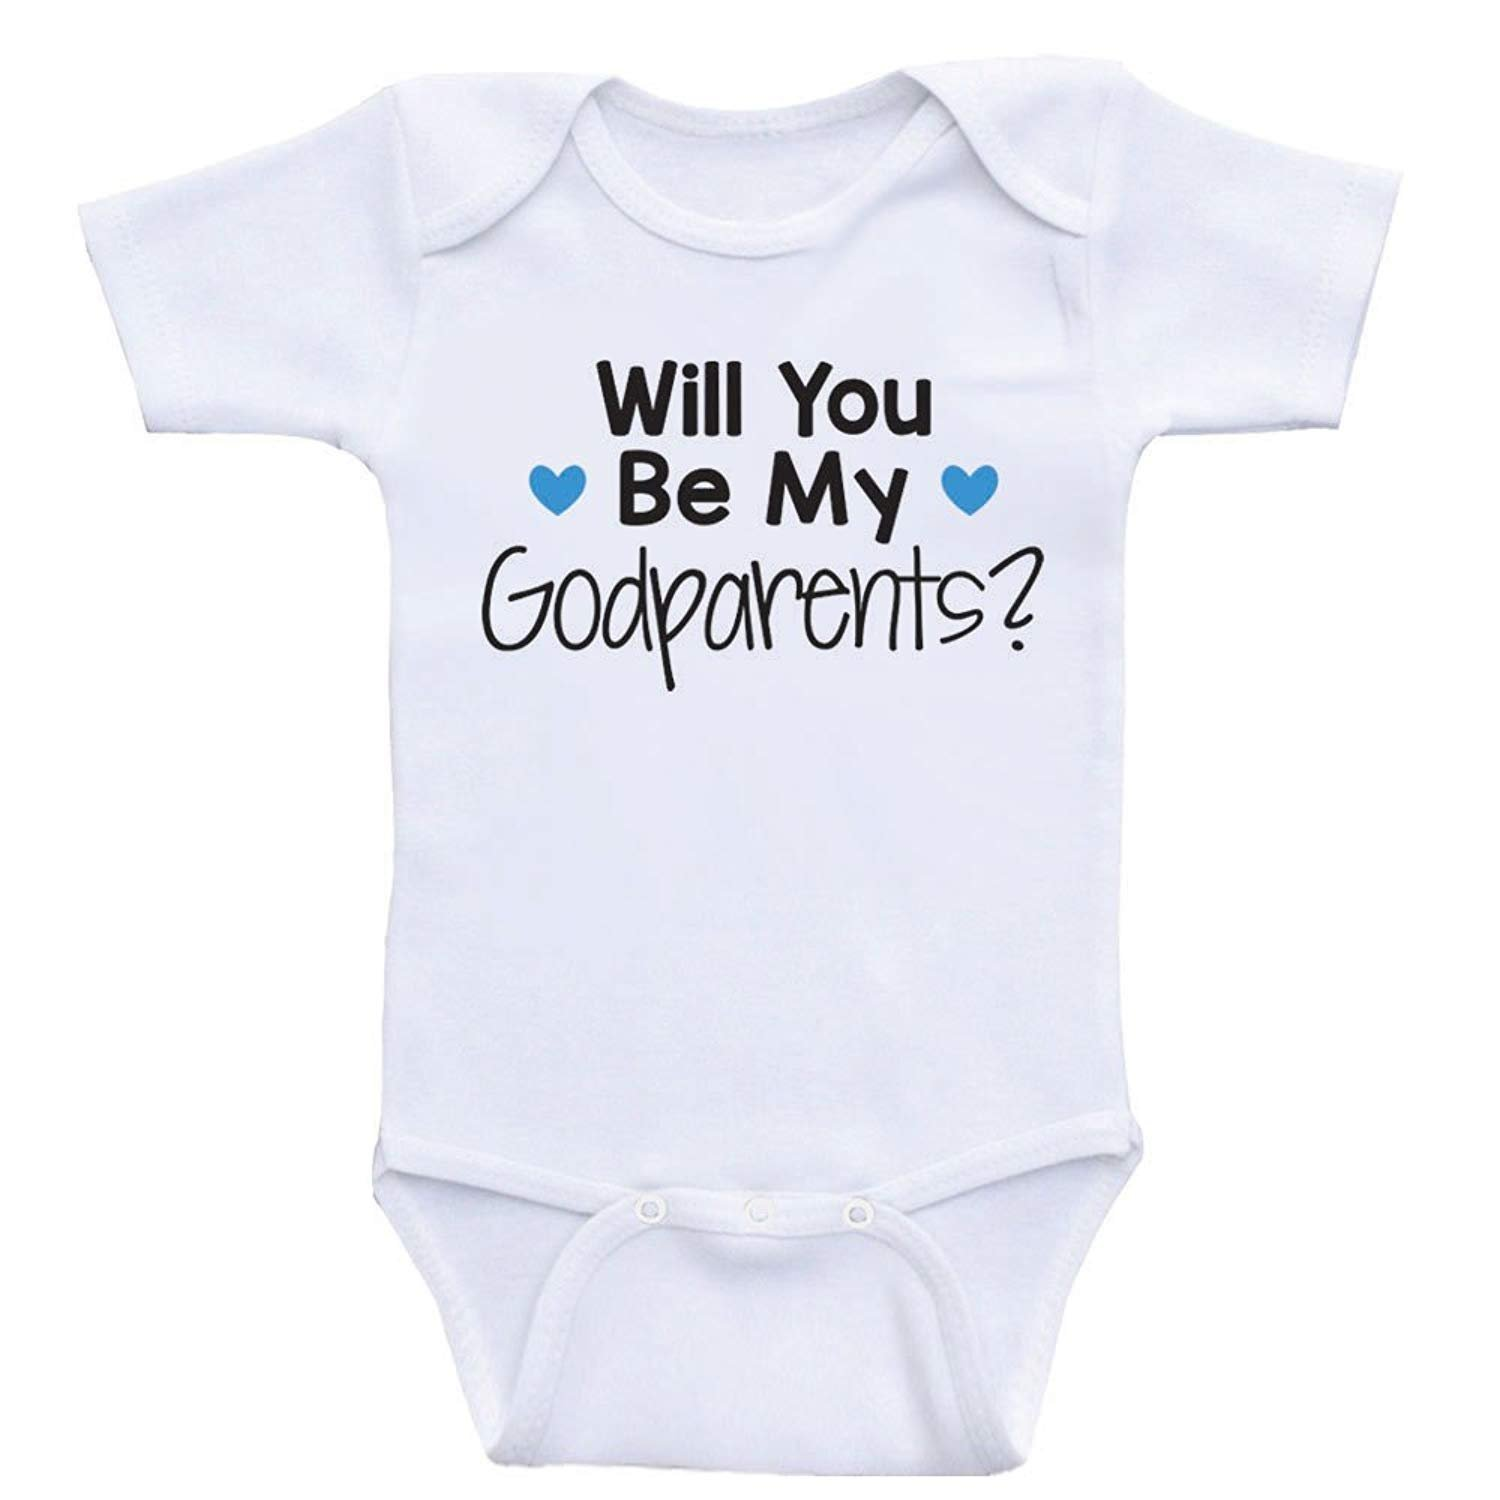 Promini Cute Baby Onesie Will You Be My Godparents Funny Bodysuits